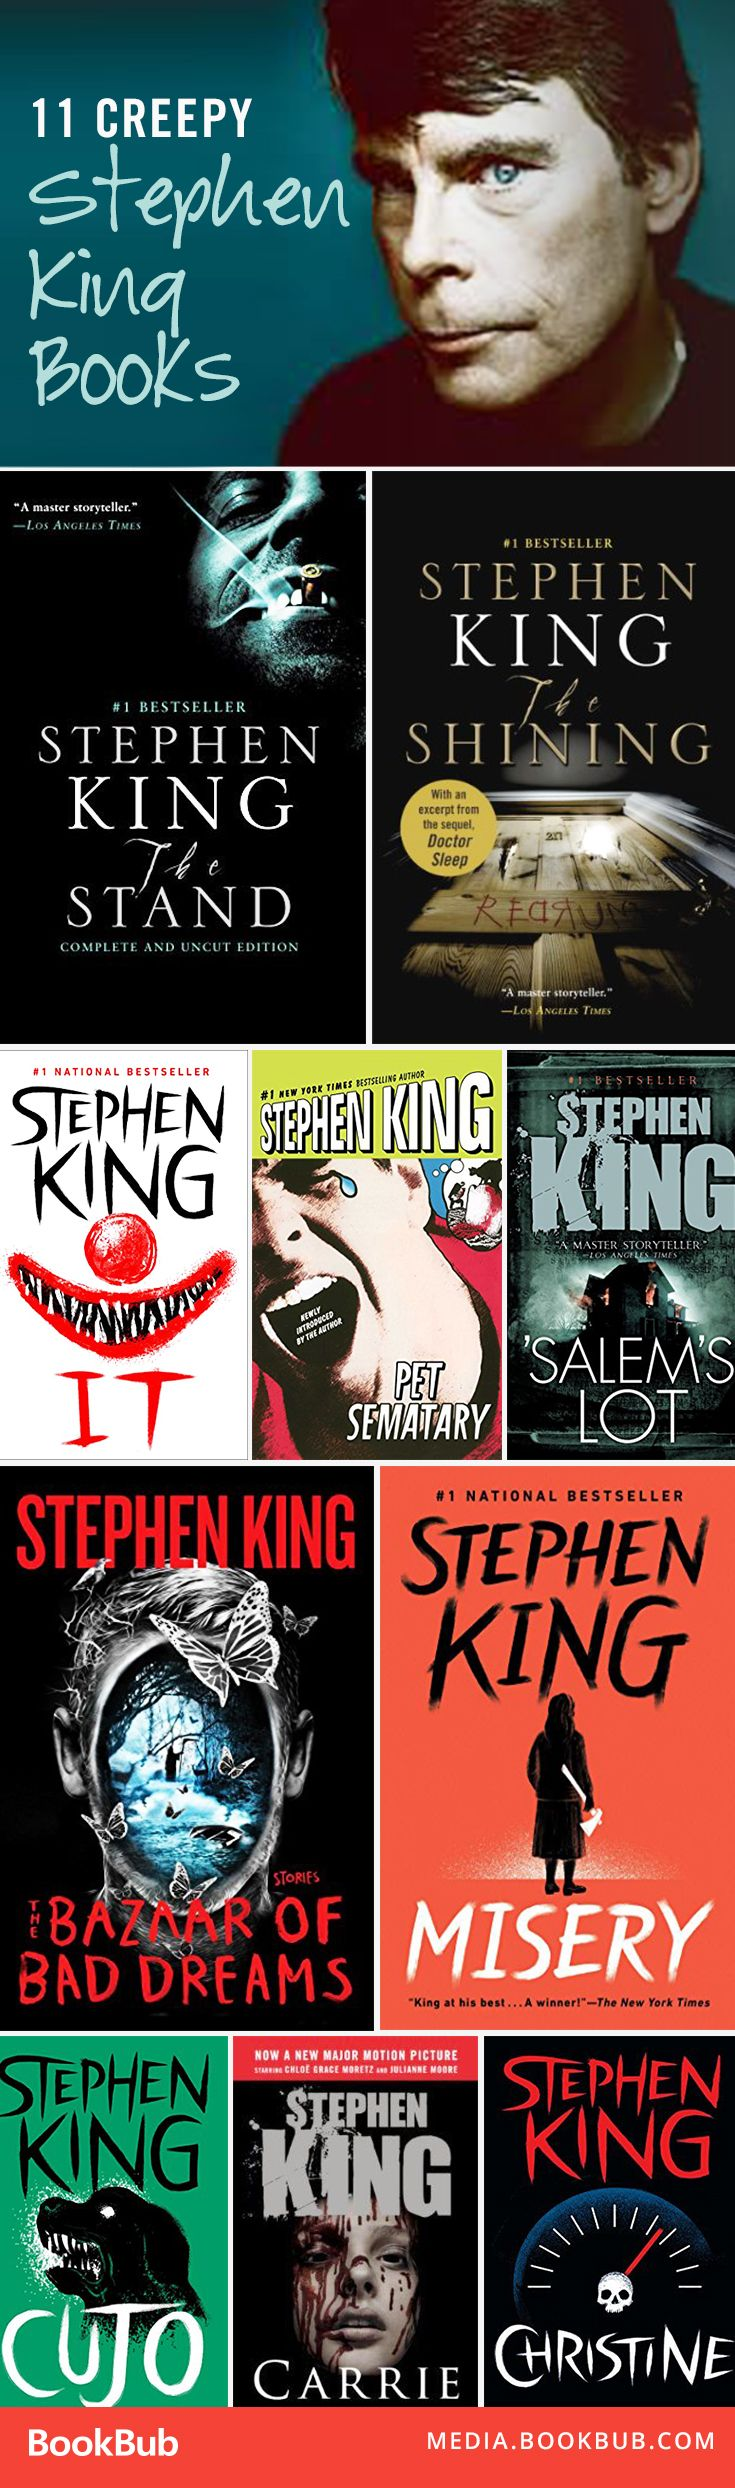 11 of Stephen King's creepiest books. These scary books are worth reading!One of my favorite authors.